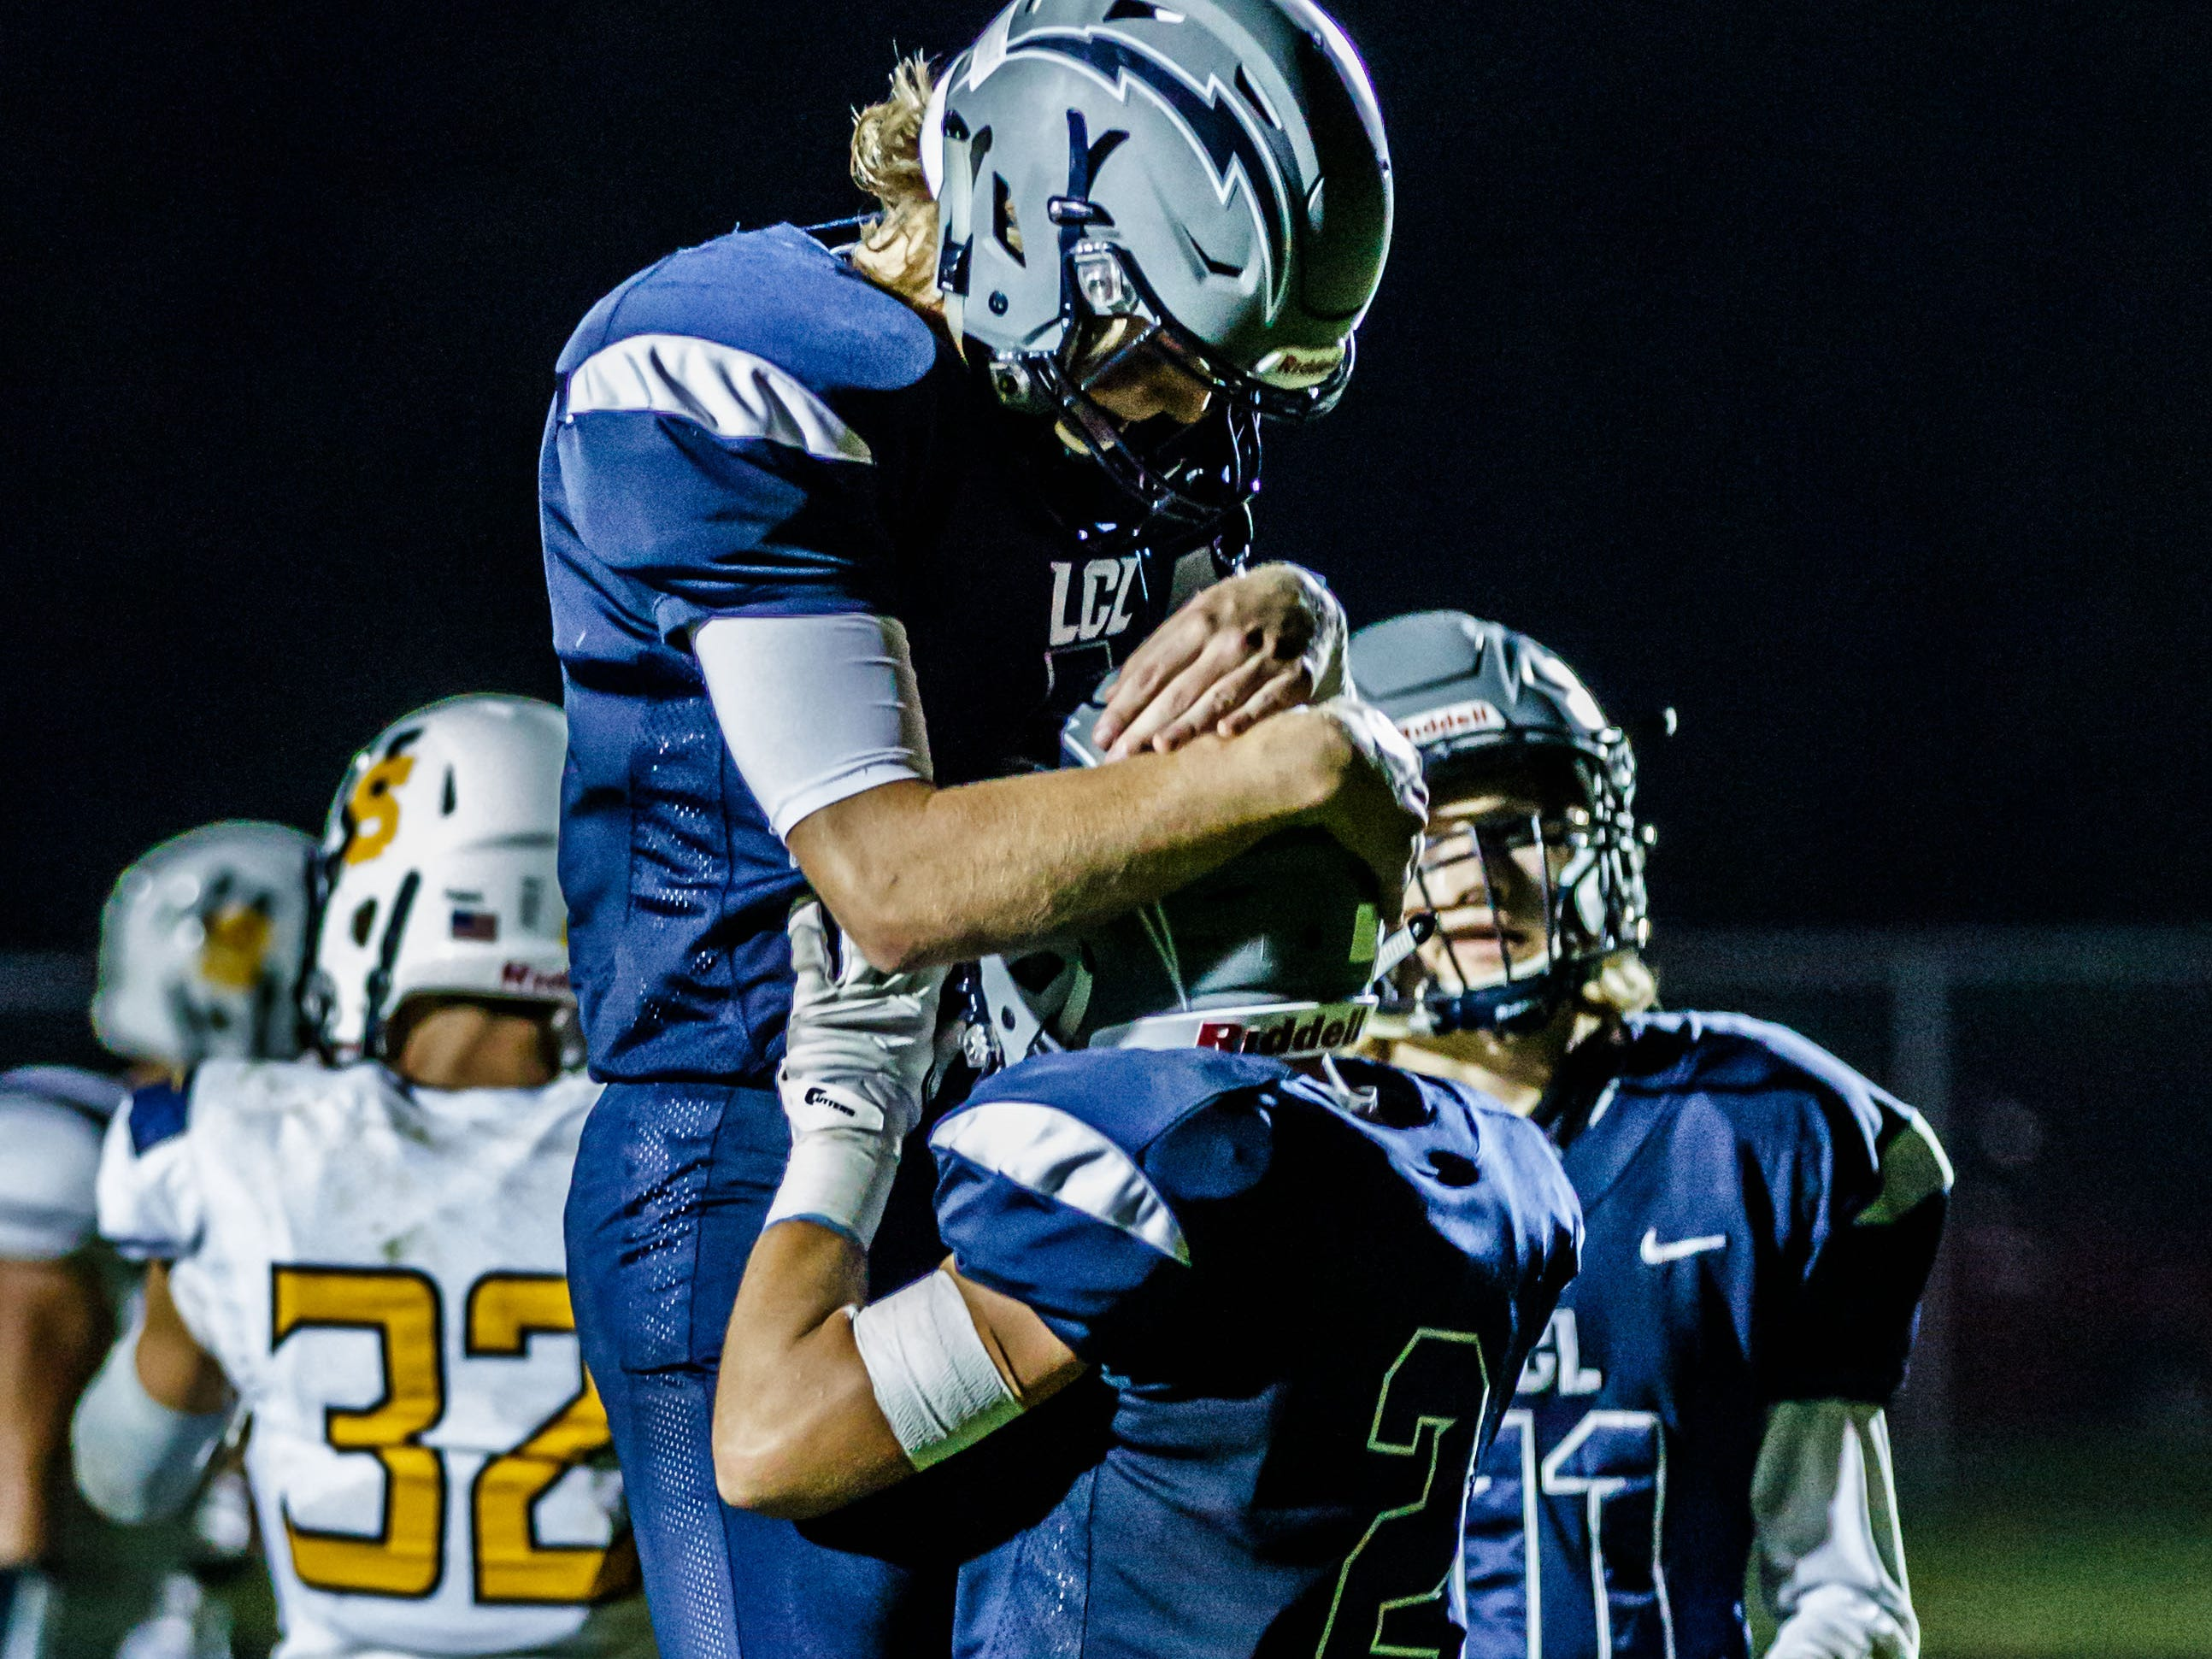 Lake Country Lutheran quarterback Ethan Wilkins (left) celebrates a touchdown with receiver Will Brazgel (2) during the game at home against University School of Milwaukee on Thursday, Sept. 13, 2018.